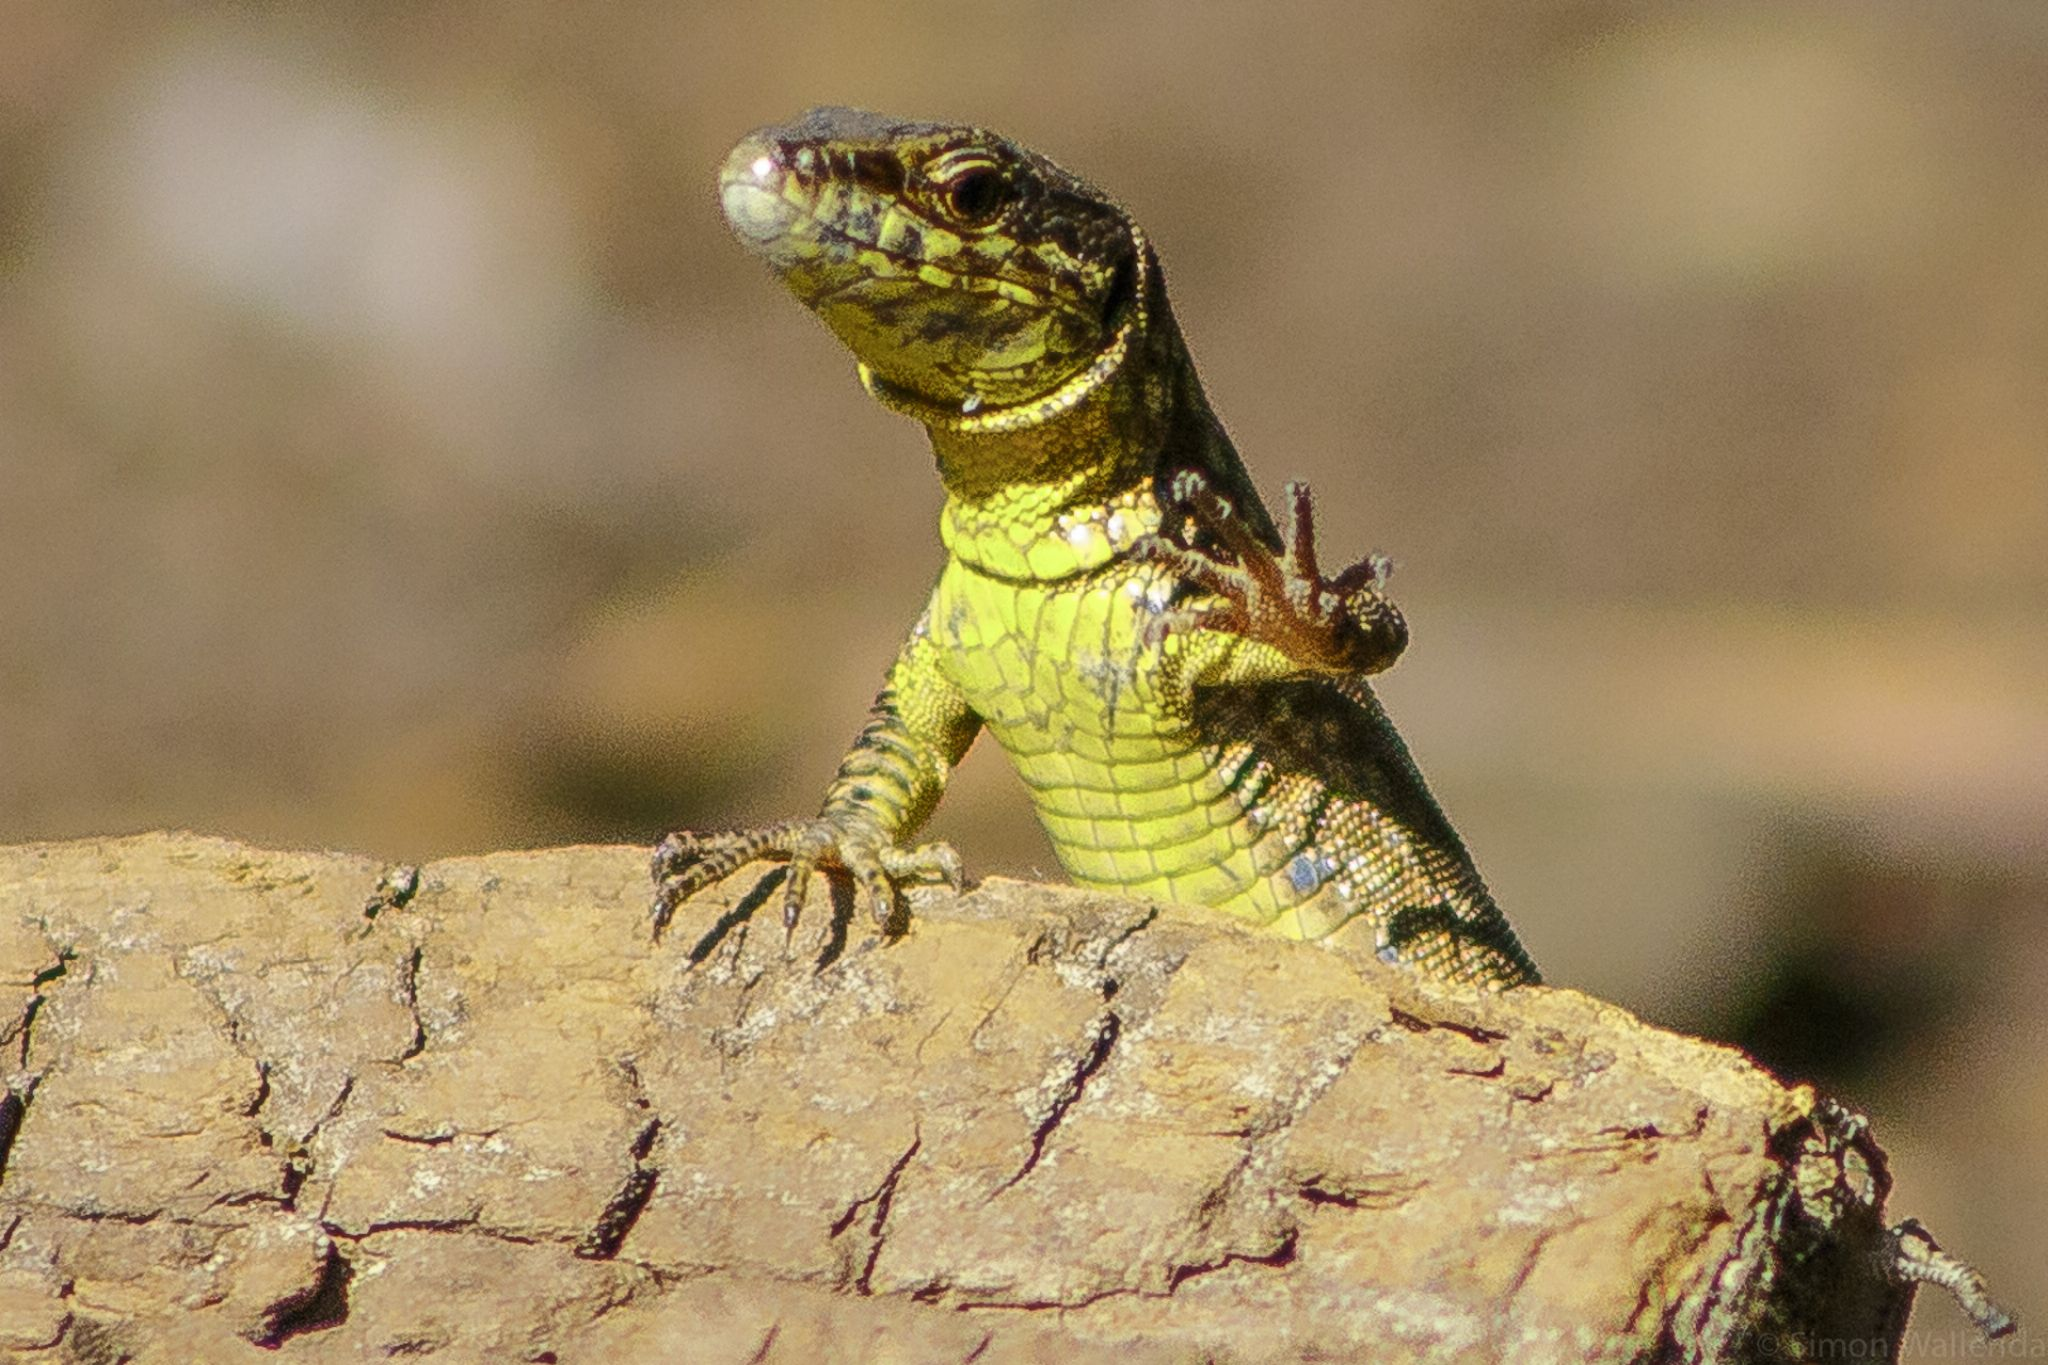 lizard in the sun by simon.wallenda